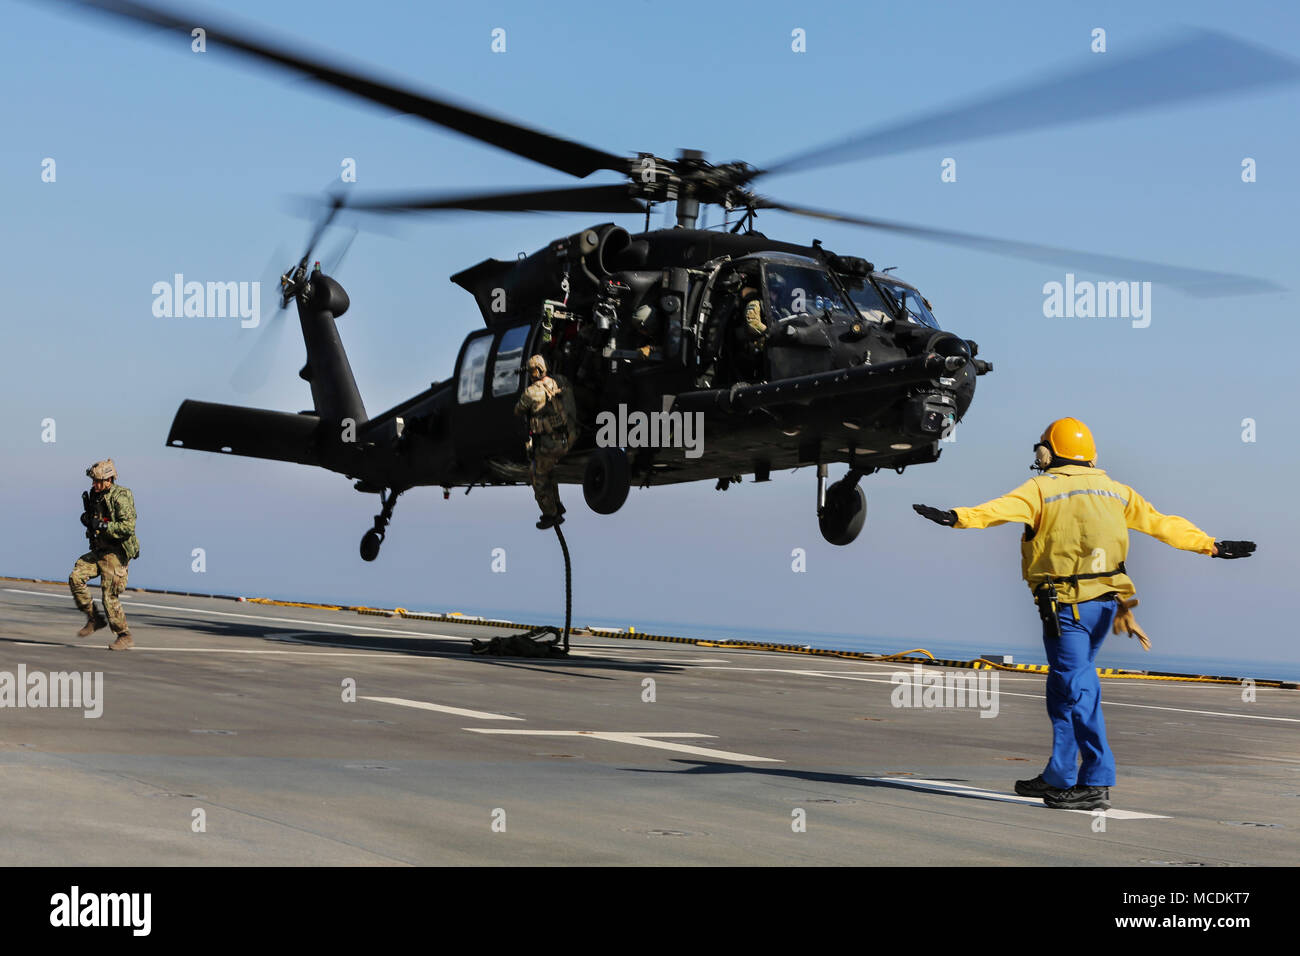 U.S. 5TH FLEET AREA OF OPERATIONS (Feb. 6, 2018) U.S. military forces fast rope out of an U.S. Army MH-60 Black Hawk onto the deck of French amphibious assault ship LHD Tonnerre (L9014) during a bilateral training evolution. The Tonnerre, with embarked Marines and Sailors from Naval Amphibious Force, Task Force 51/5th Marine Expeditionary Brigade and US Special Operations Forces are conducting maritime security operations within the U.S. 5th Fleet area of operations to ensure regional stability, freedom of navigation and the free flow of commerce with regional partners. (U.S. Marine Corps phot - Stock Image